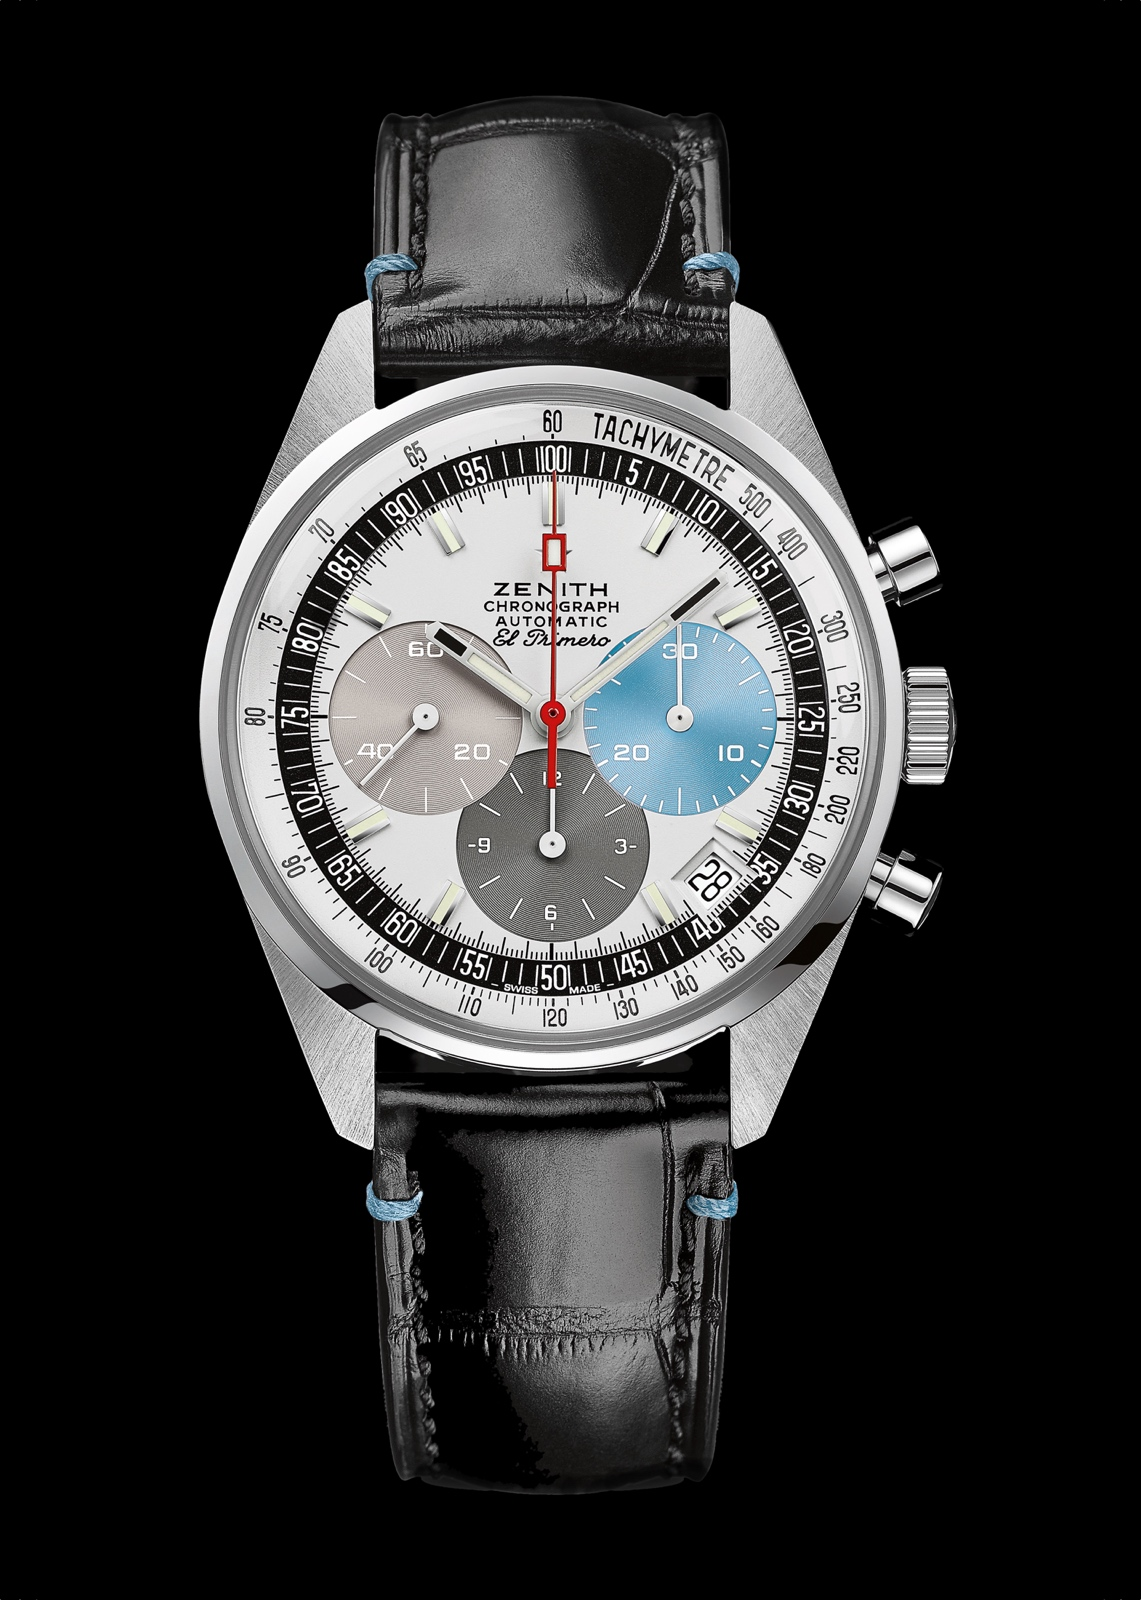 Zenith El Primero A386 Revival Only Watch 2019 - front